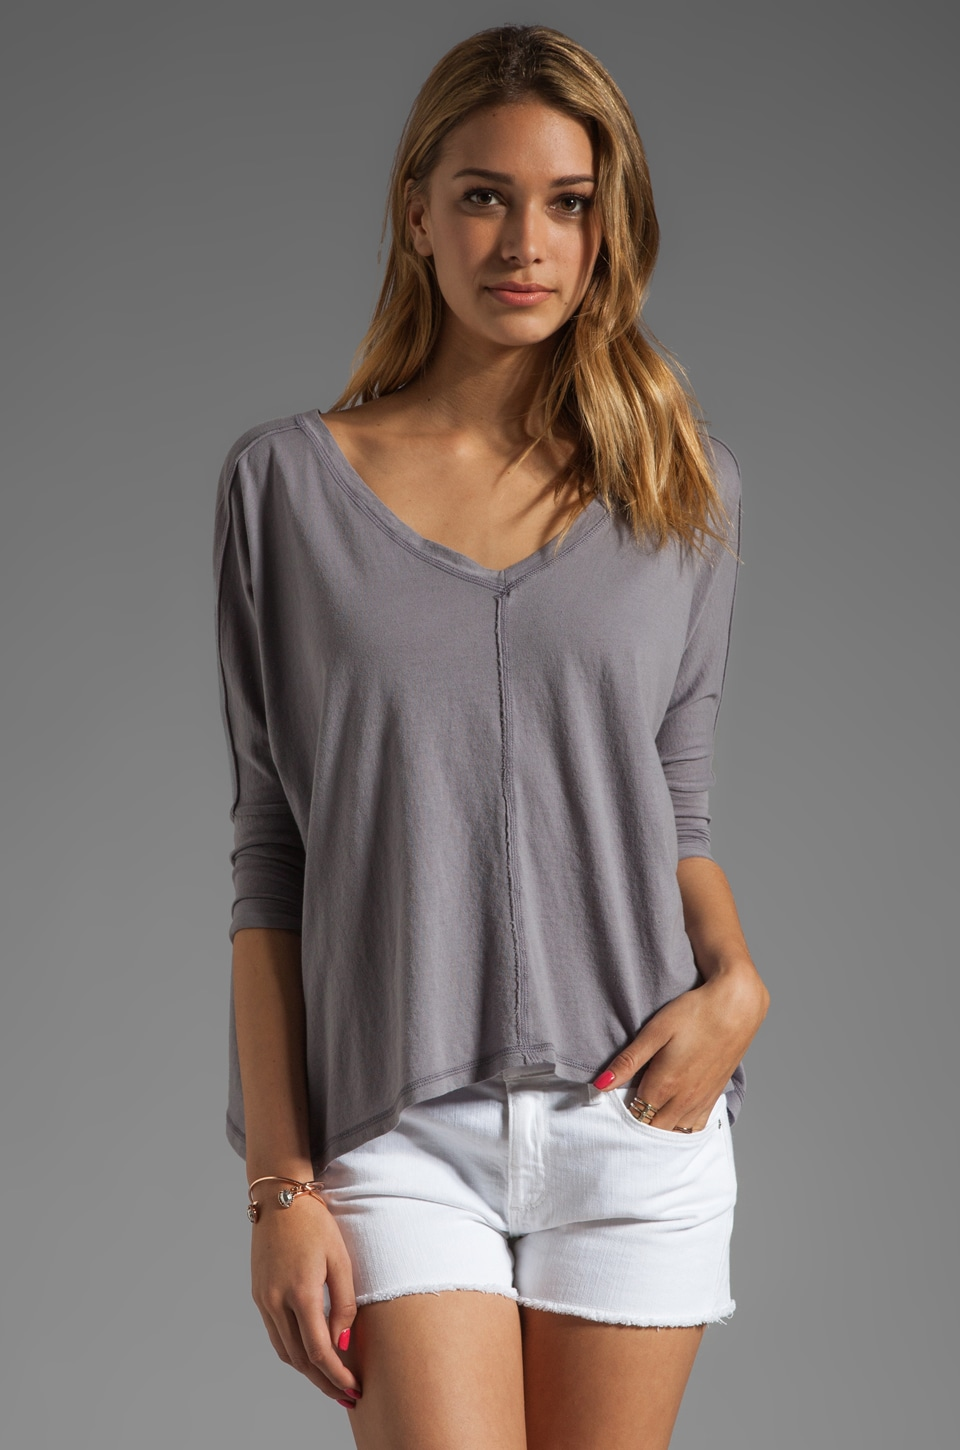 Bobi Lightweight Jersey Dolman Top in Pavement